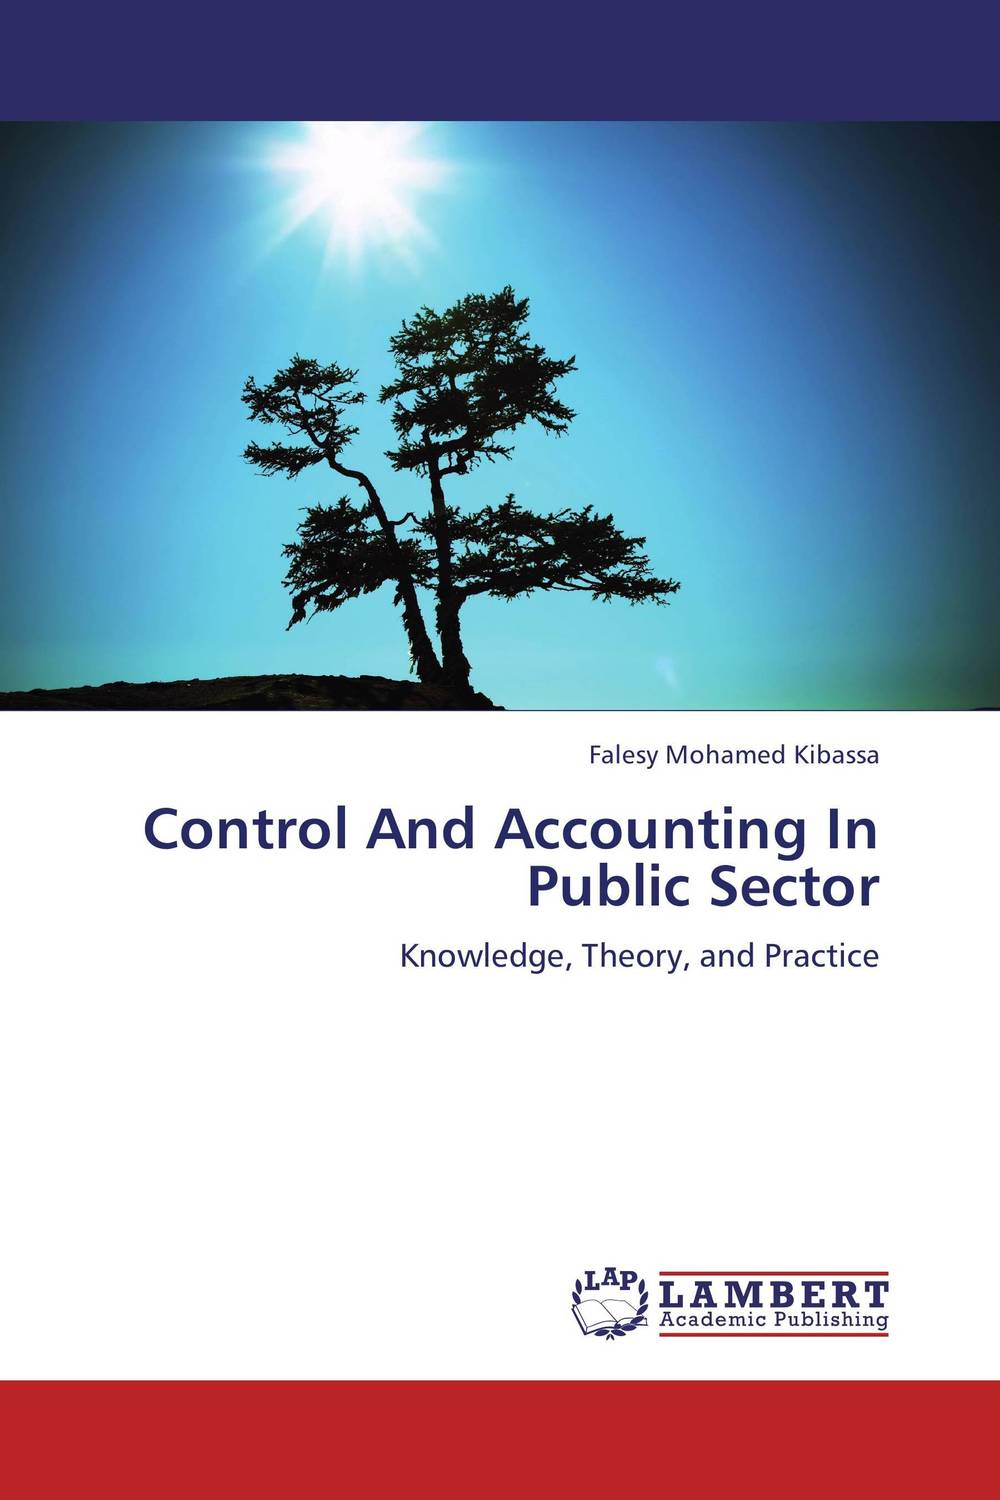 Control And Accounting In Public Sector principles of financial accounting